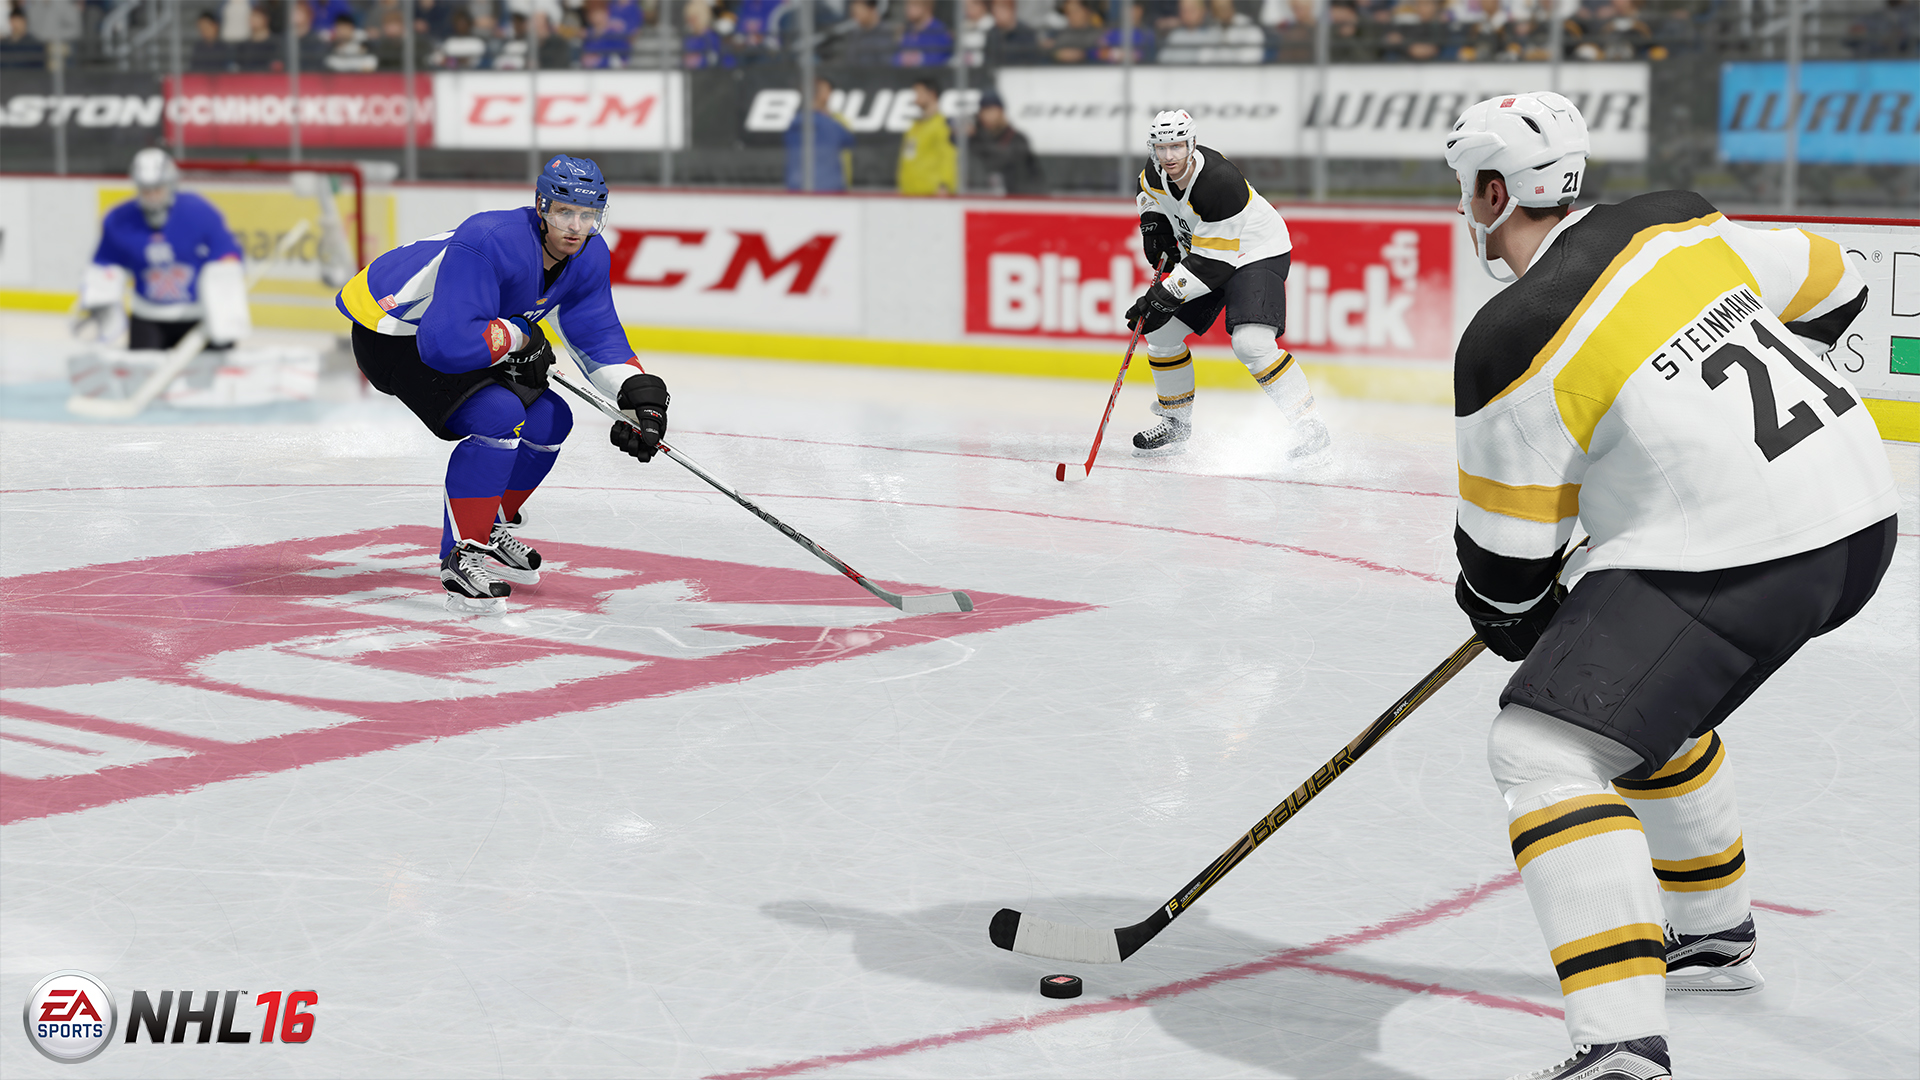 NHL16-EU-Lugano-Away-2-1920x1080-WM